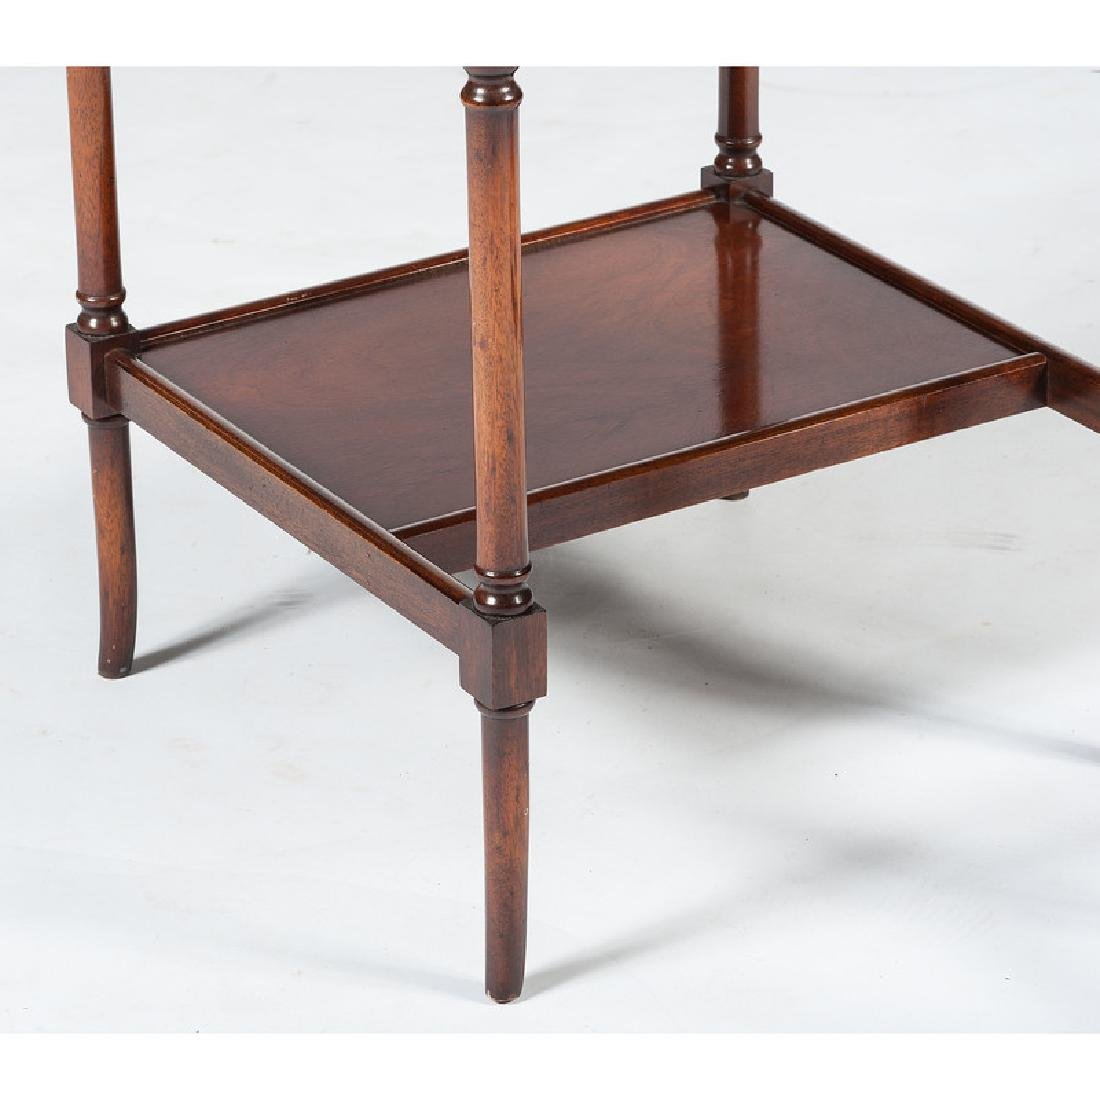 English Mahogany Desk with Stool - 4